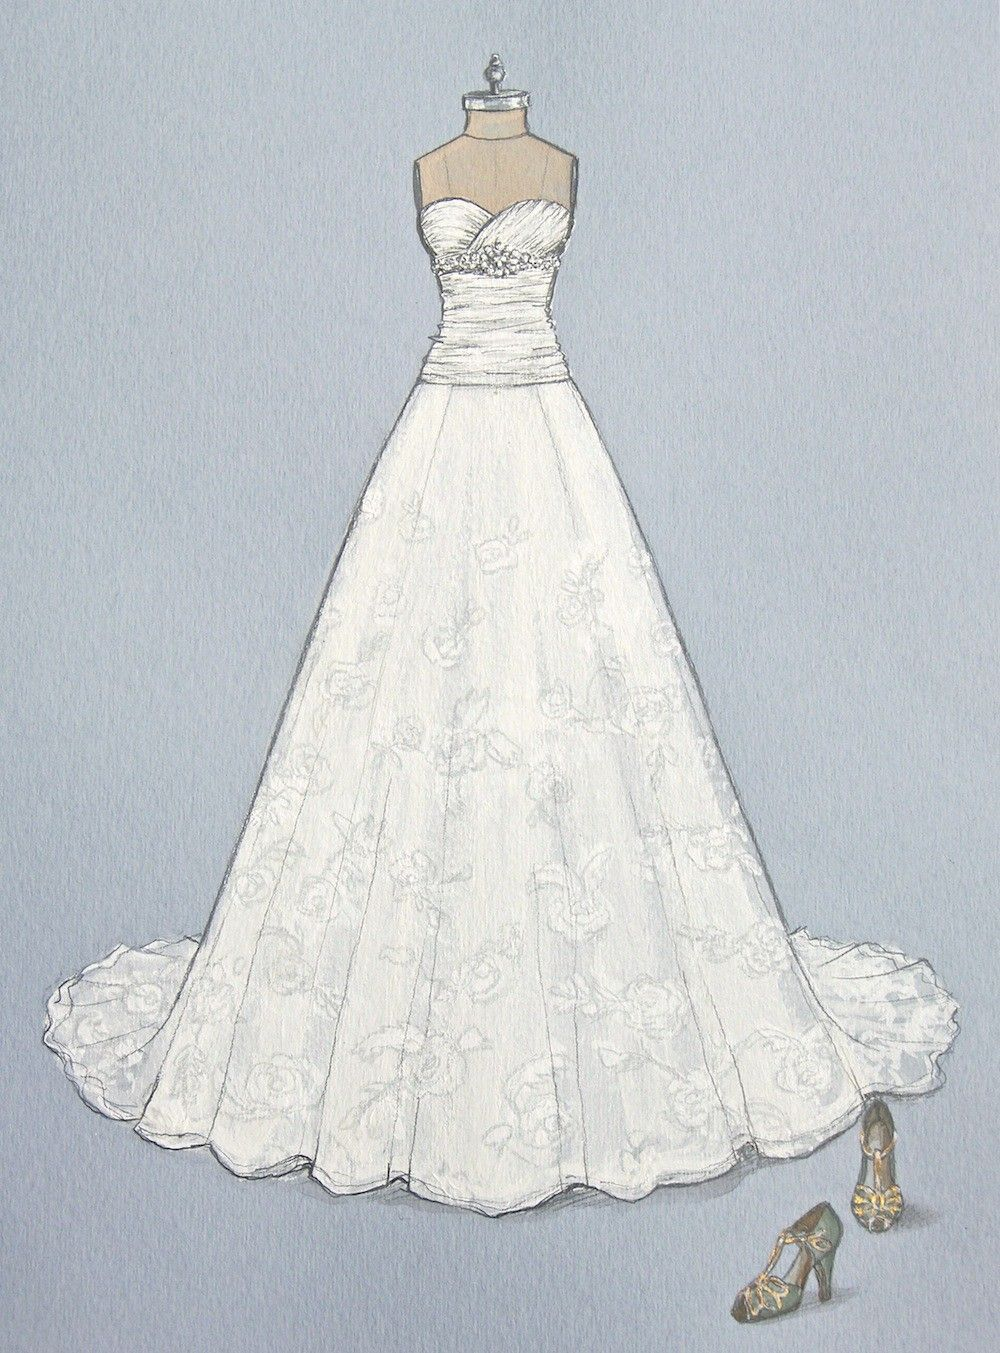 Porfolio of custom wedding dress sketches and illustrations for ...